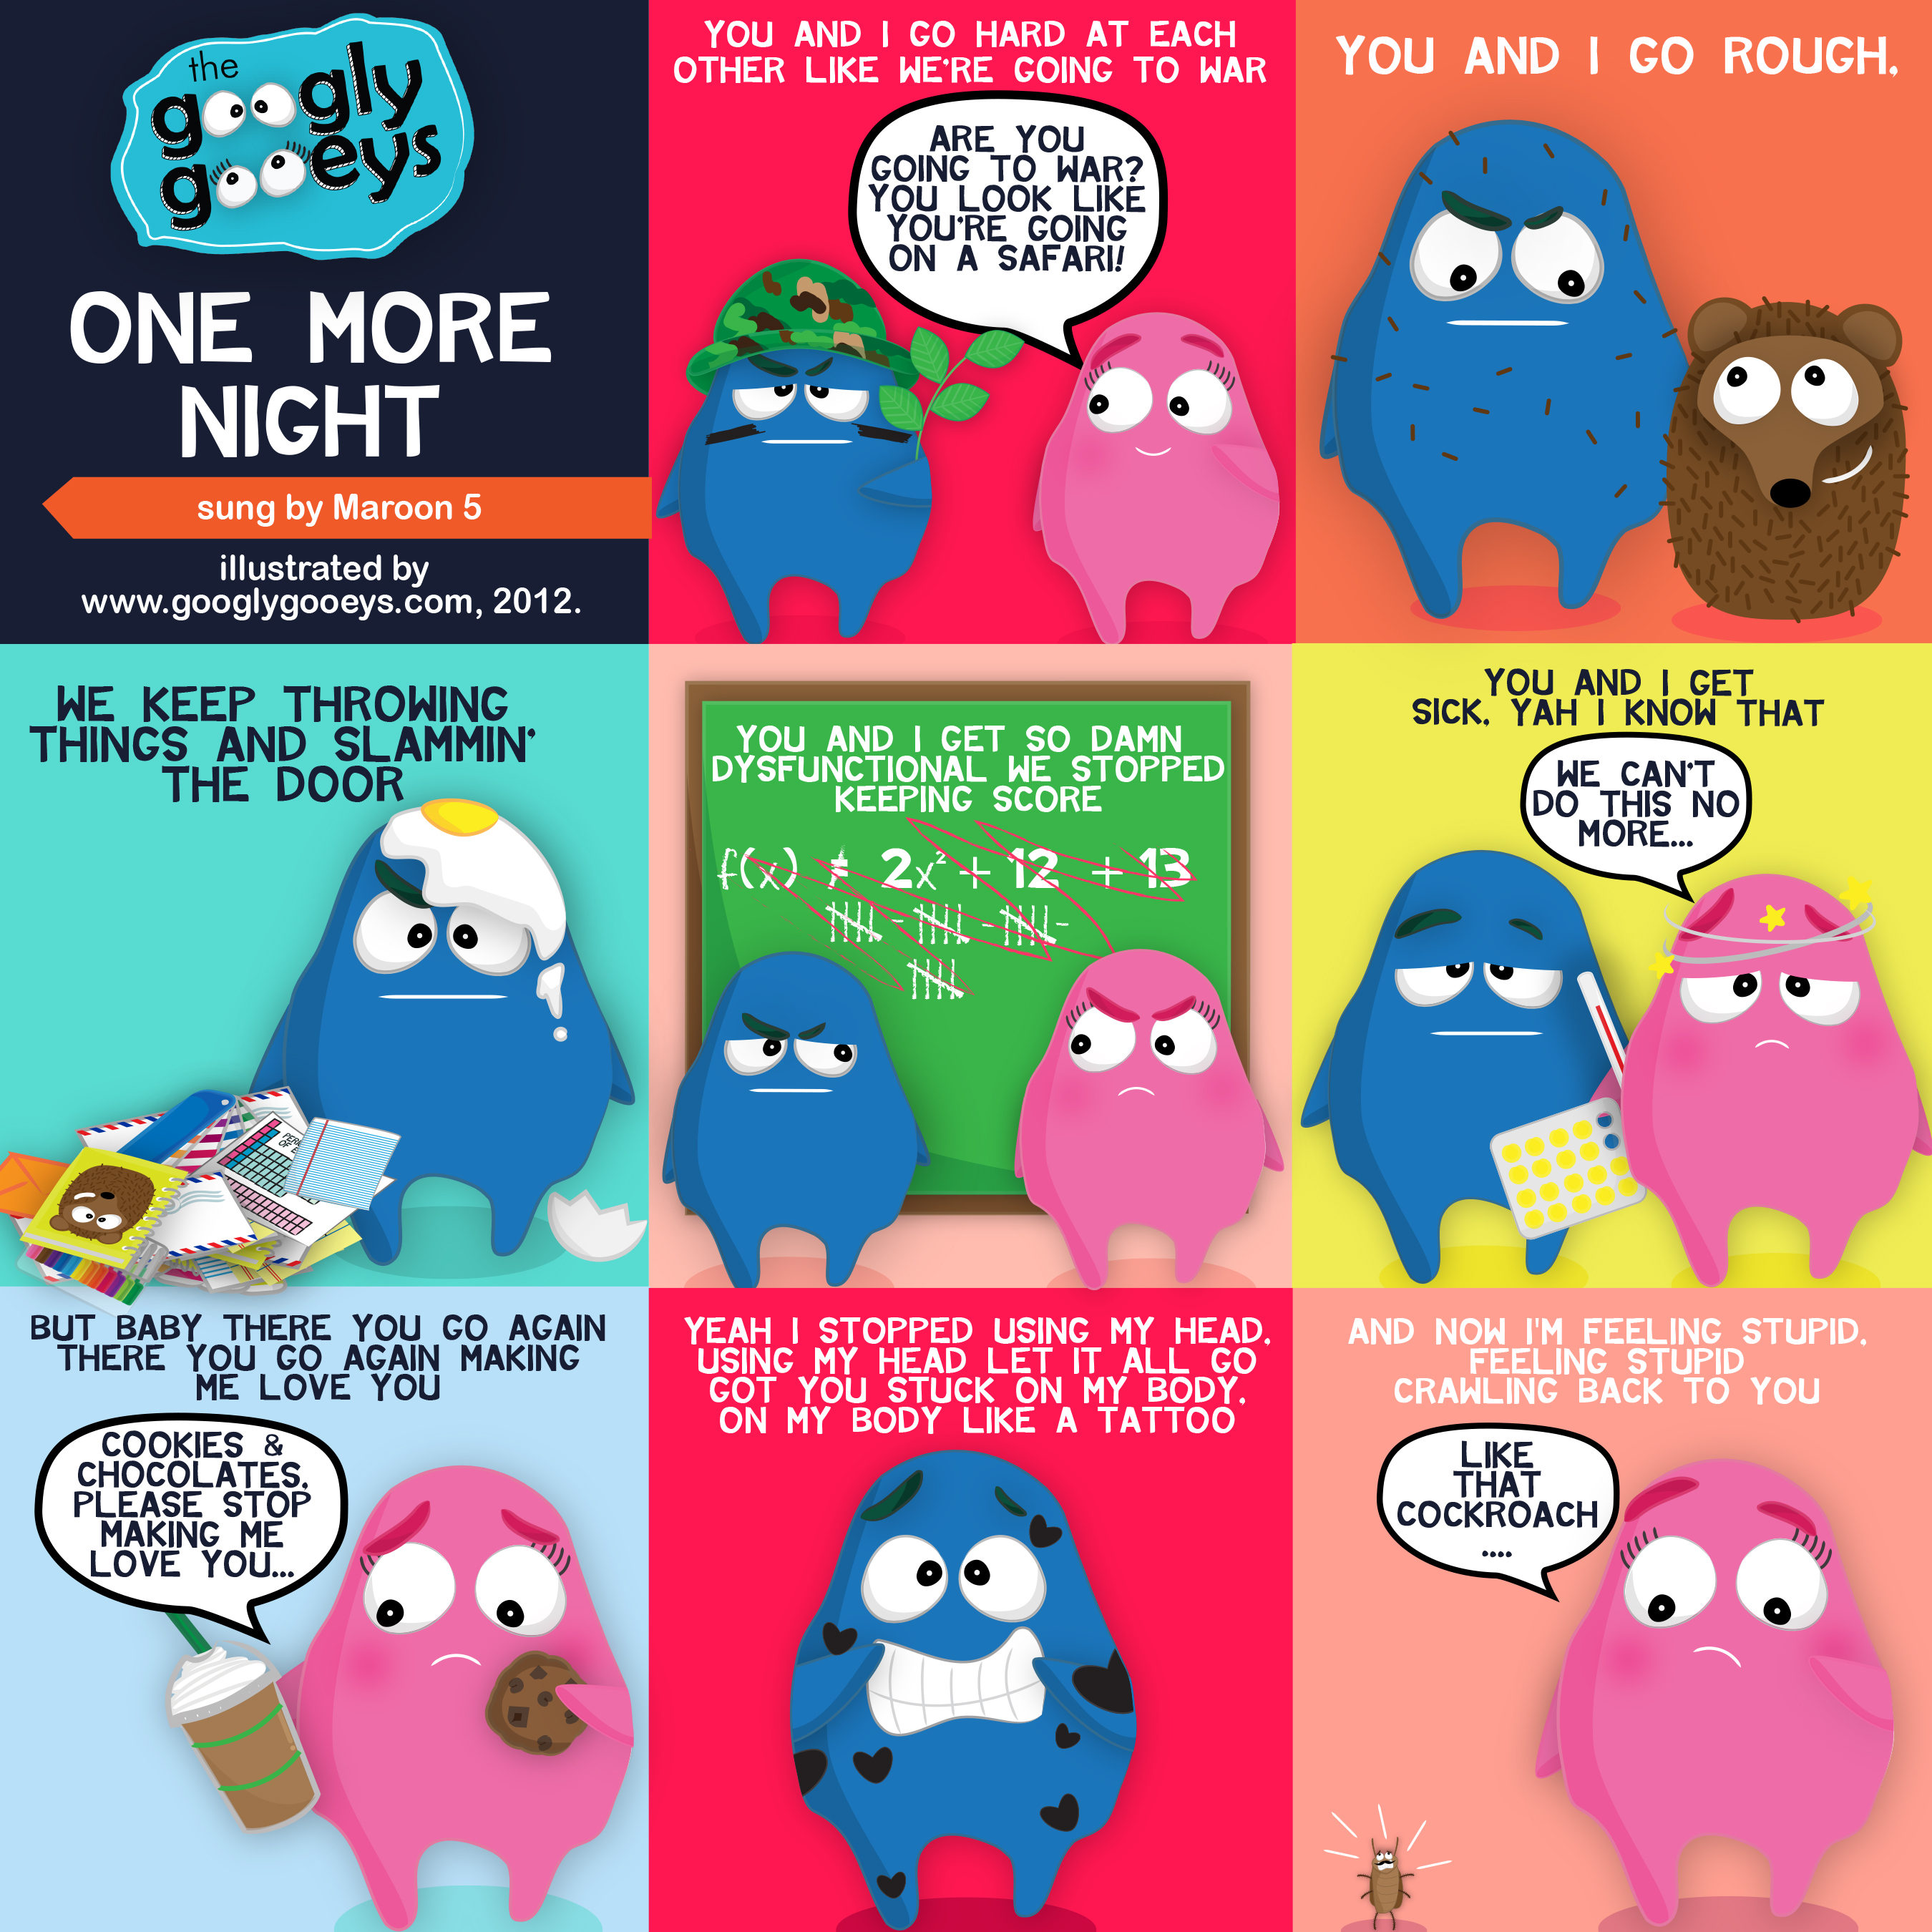 One More Night Lyrics Illustrated (Sung by Maroon 5)